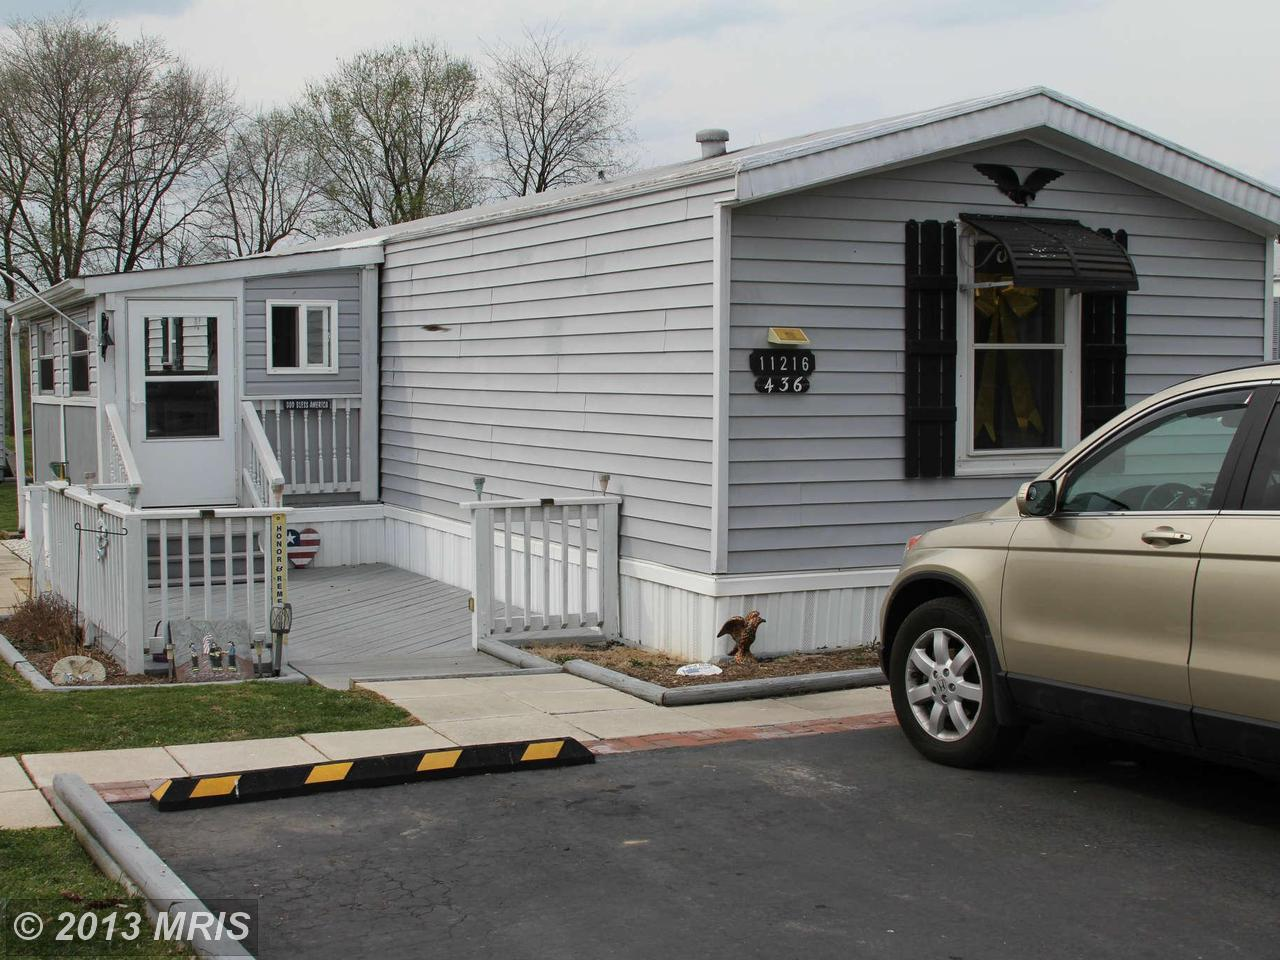 Mobile homes for sale in hagerstown md hagerstown mls hagerstown real estate - Md house mobili ...